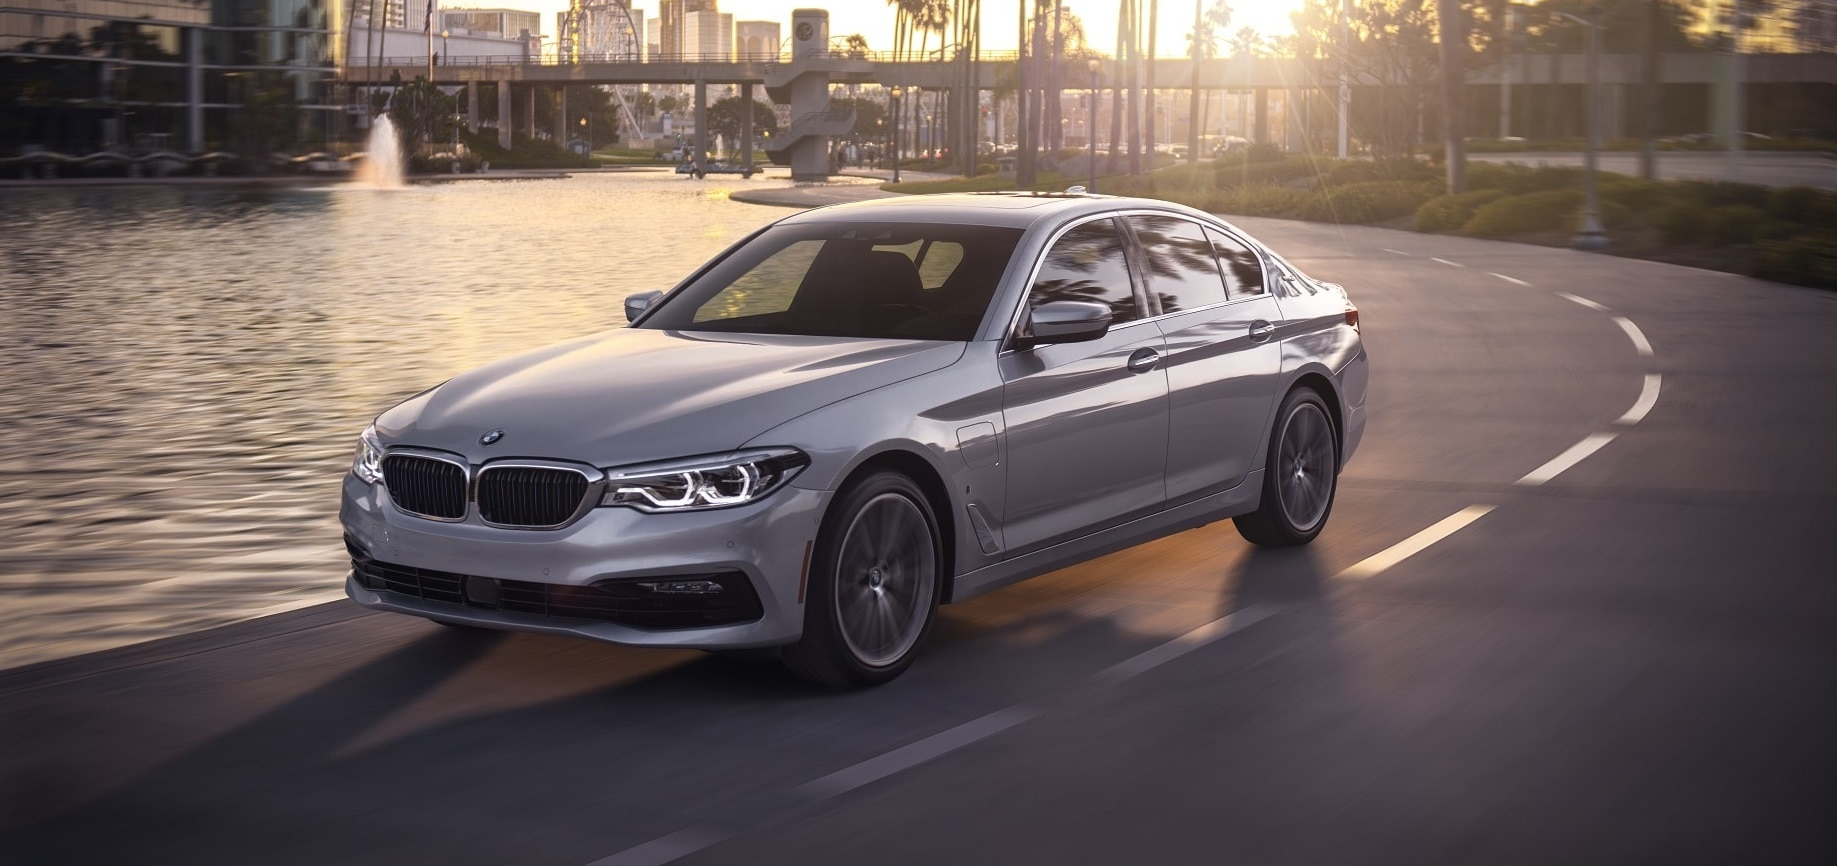 BMW 5 Series: Roadside Assistance